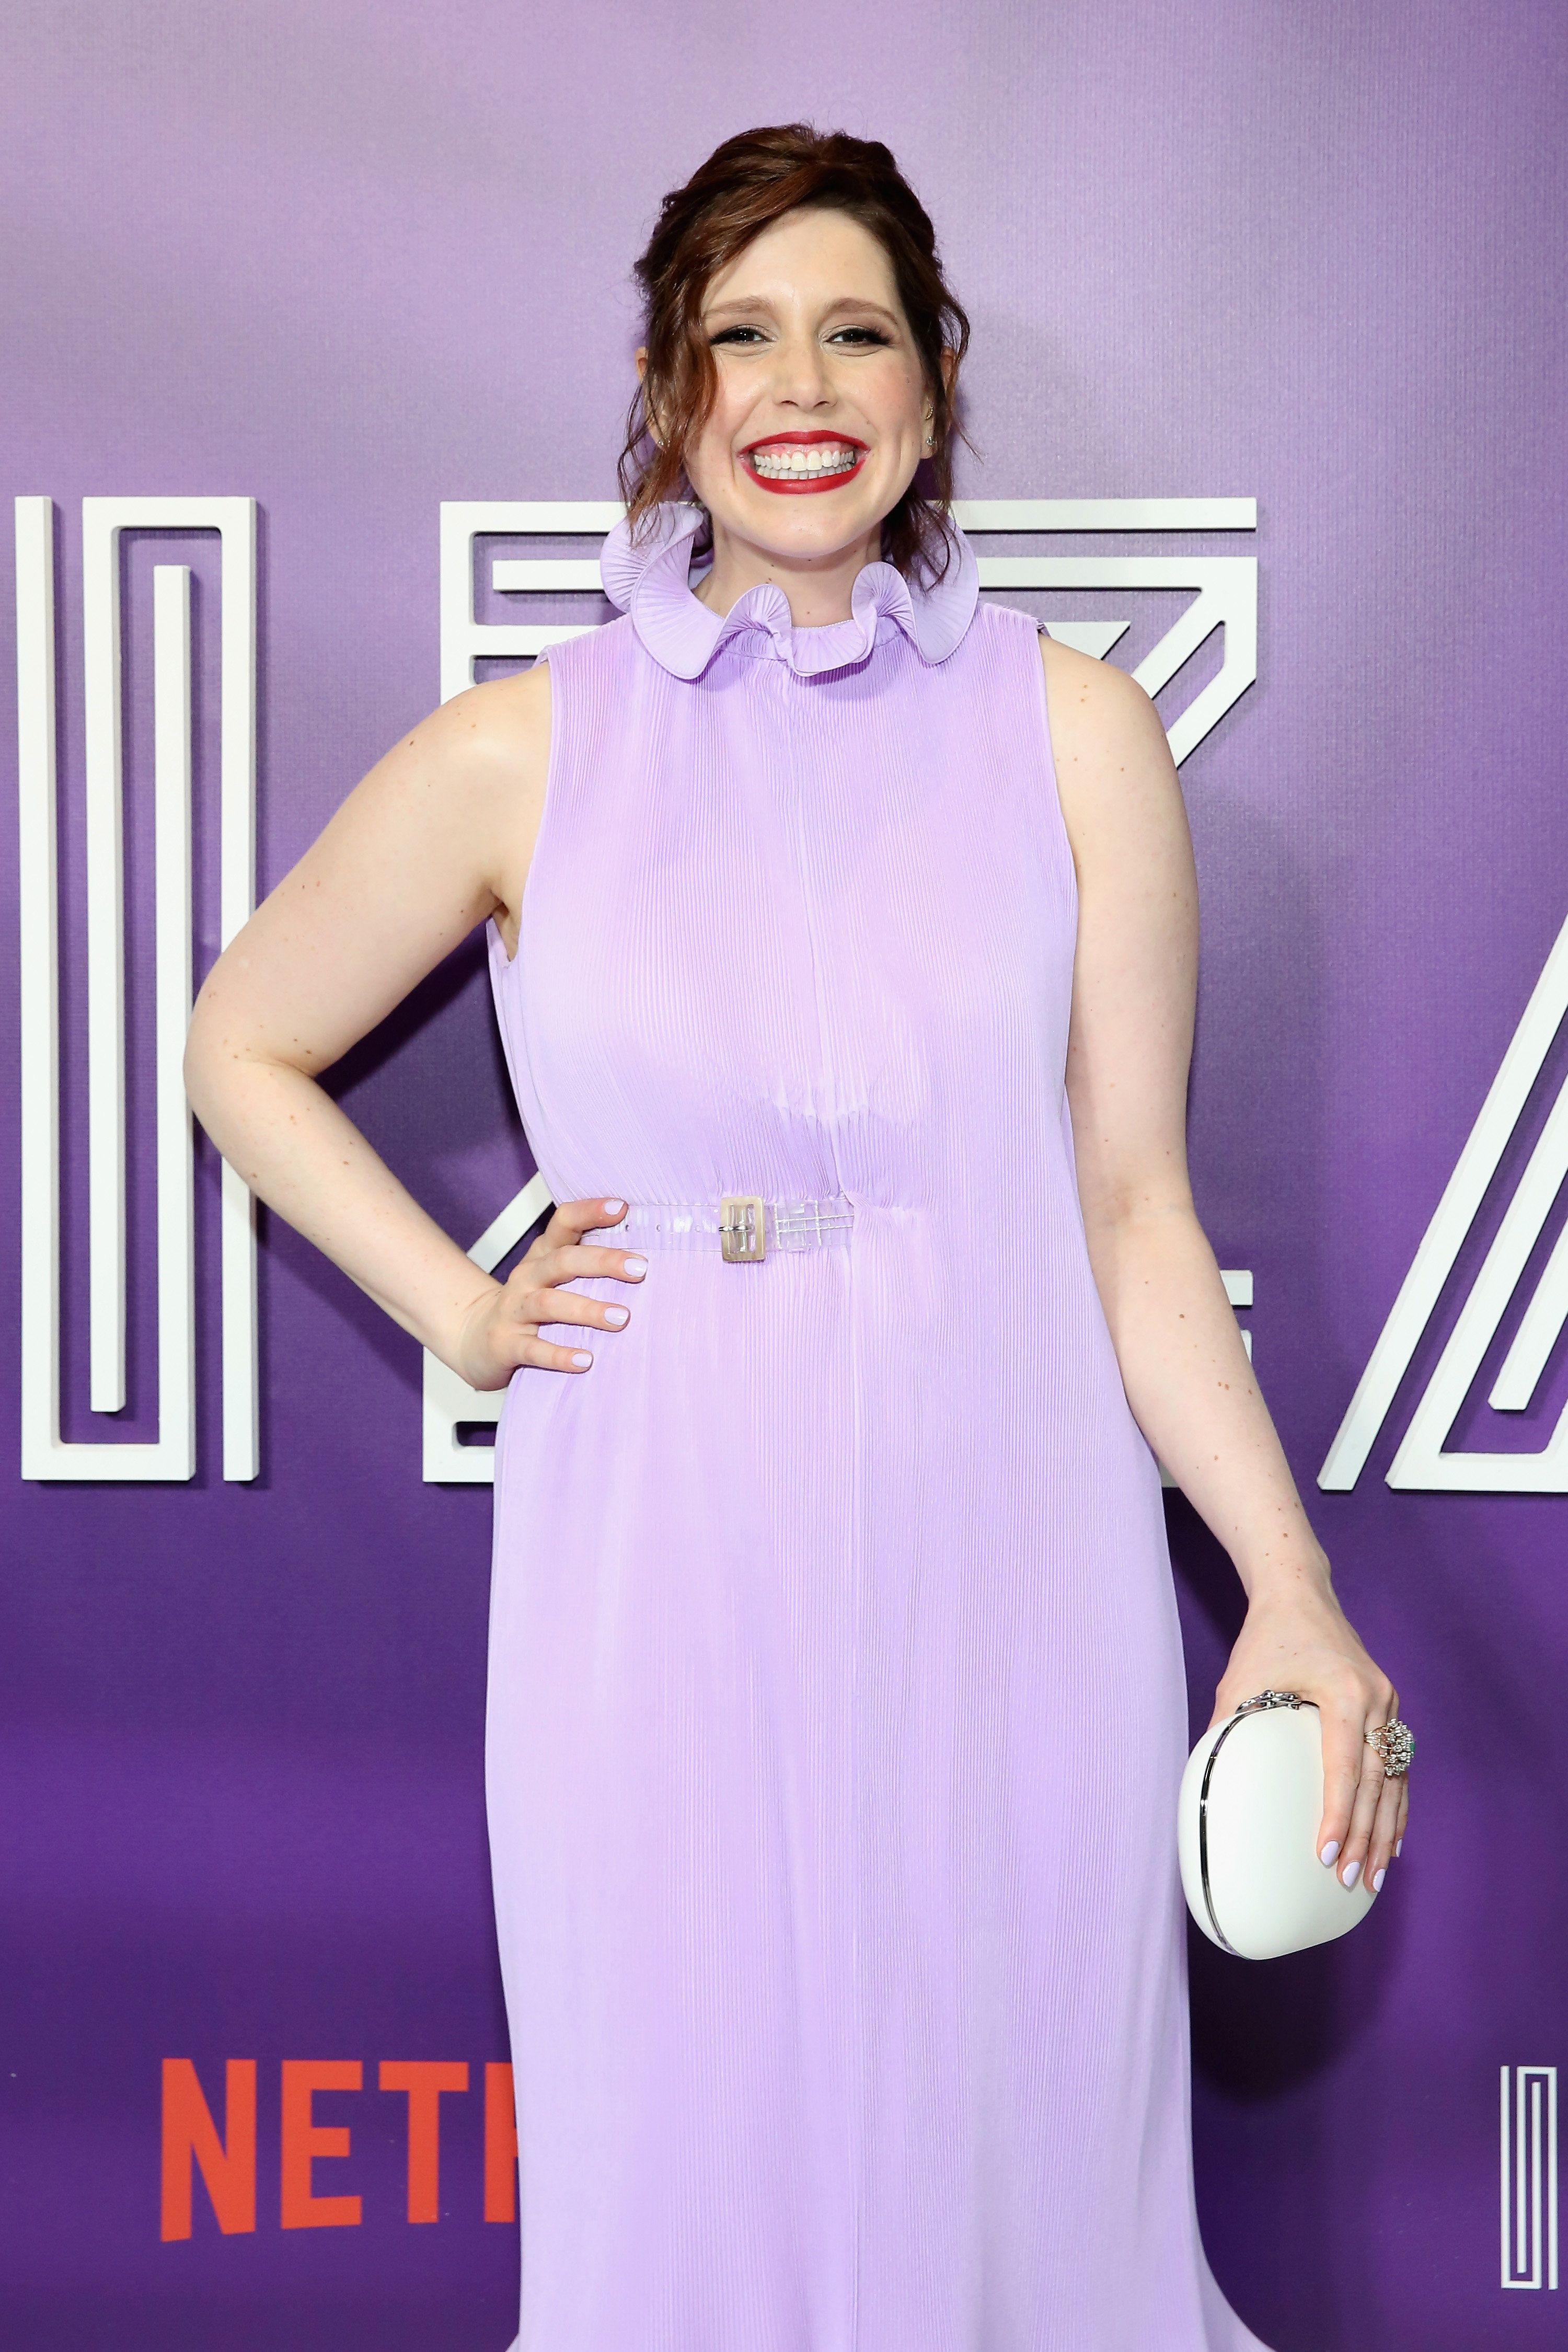 NEW YORK, NY - MAY 21:  Vanessa Bayer attends Netflix's Ibiza Premiere at AMC Loews Lincoln Square 13 on May 21, 2018 in New York City.  (Photo by Monica Schipper/Getty Images for Netflix)